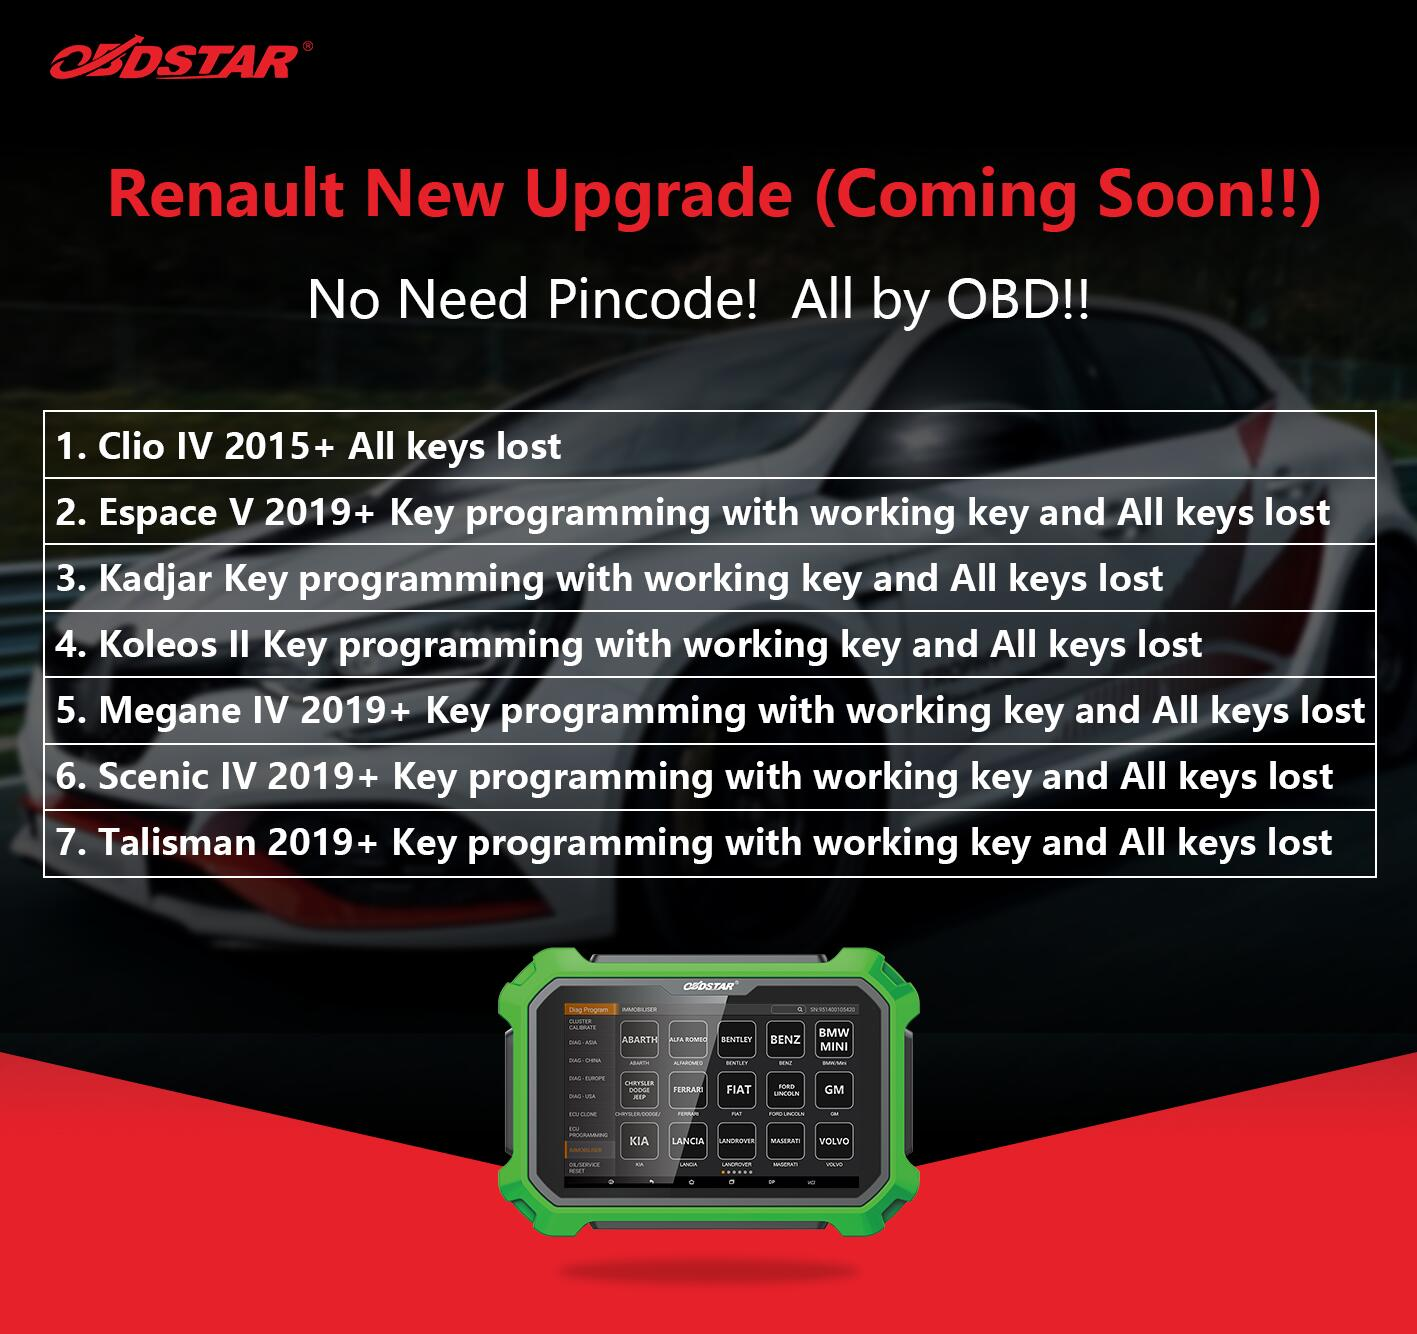 obdstar renault new update